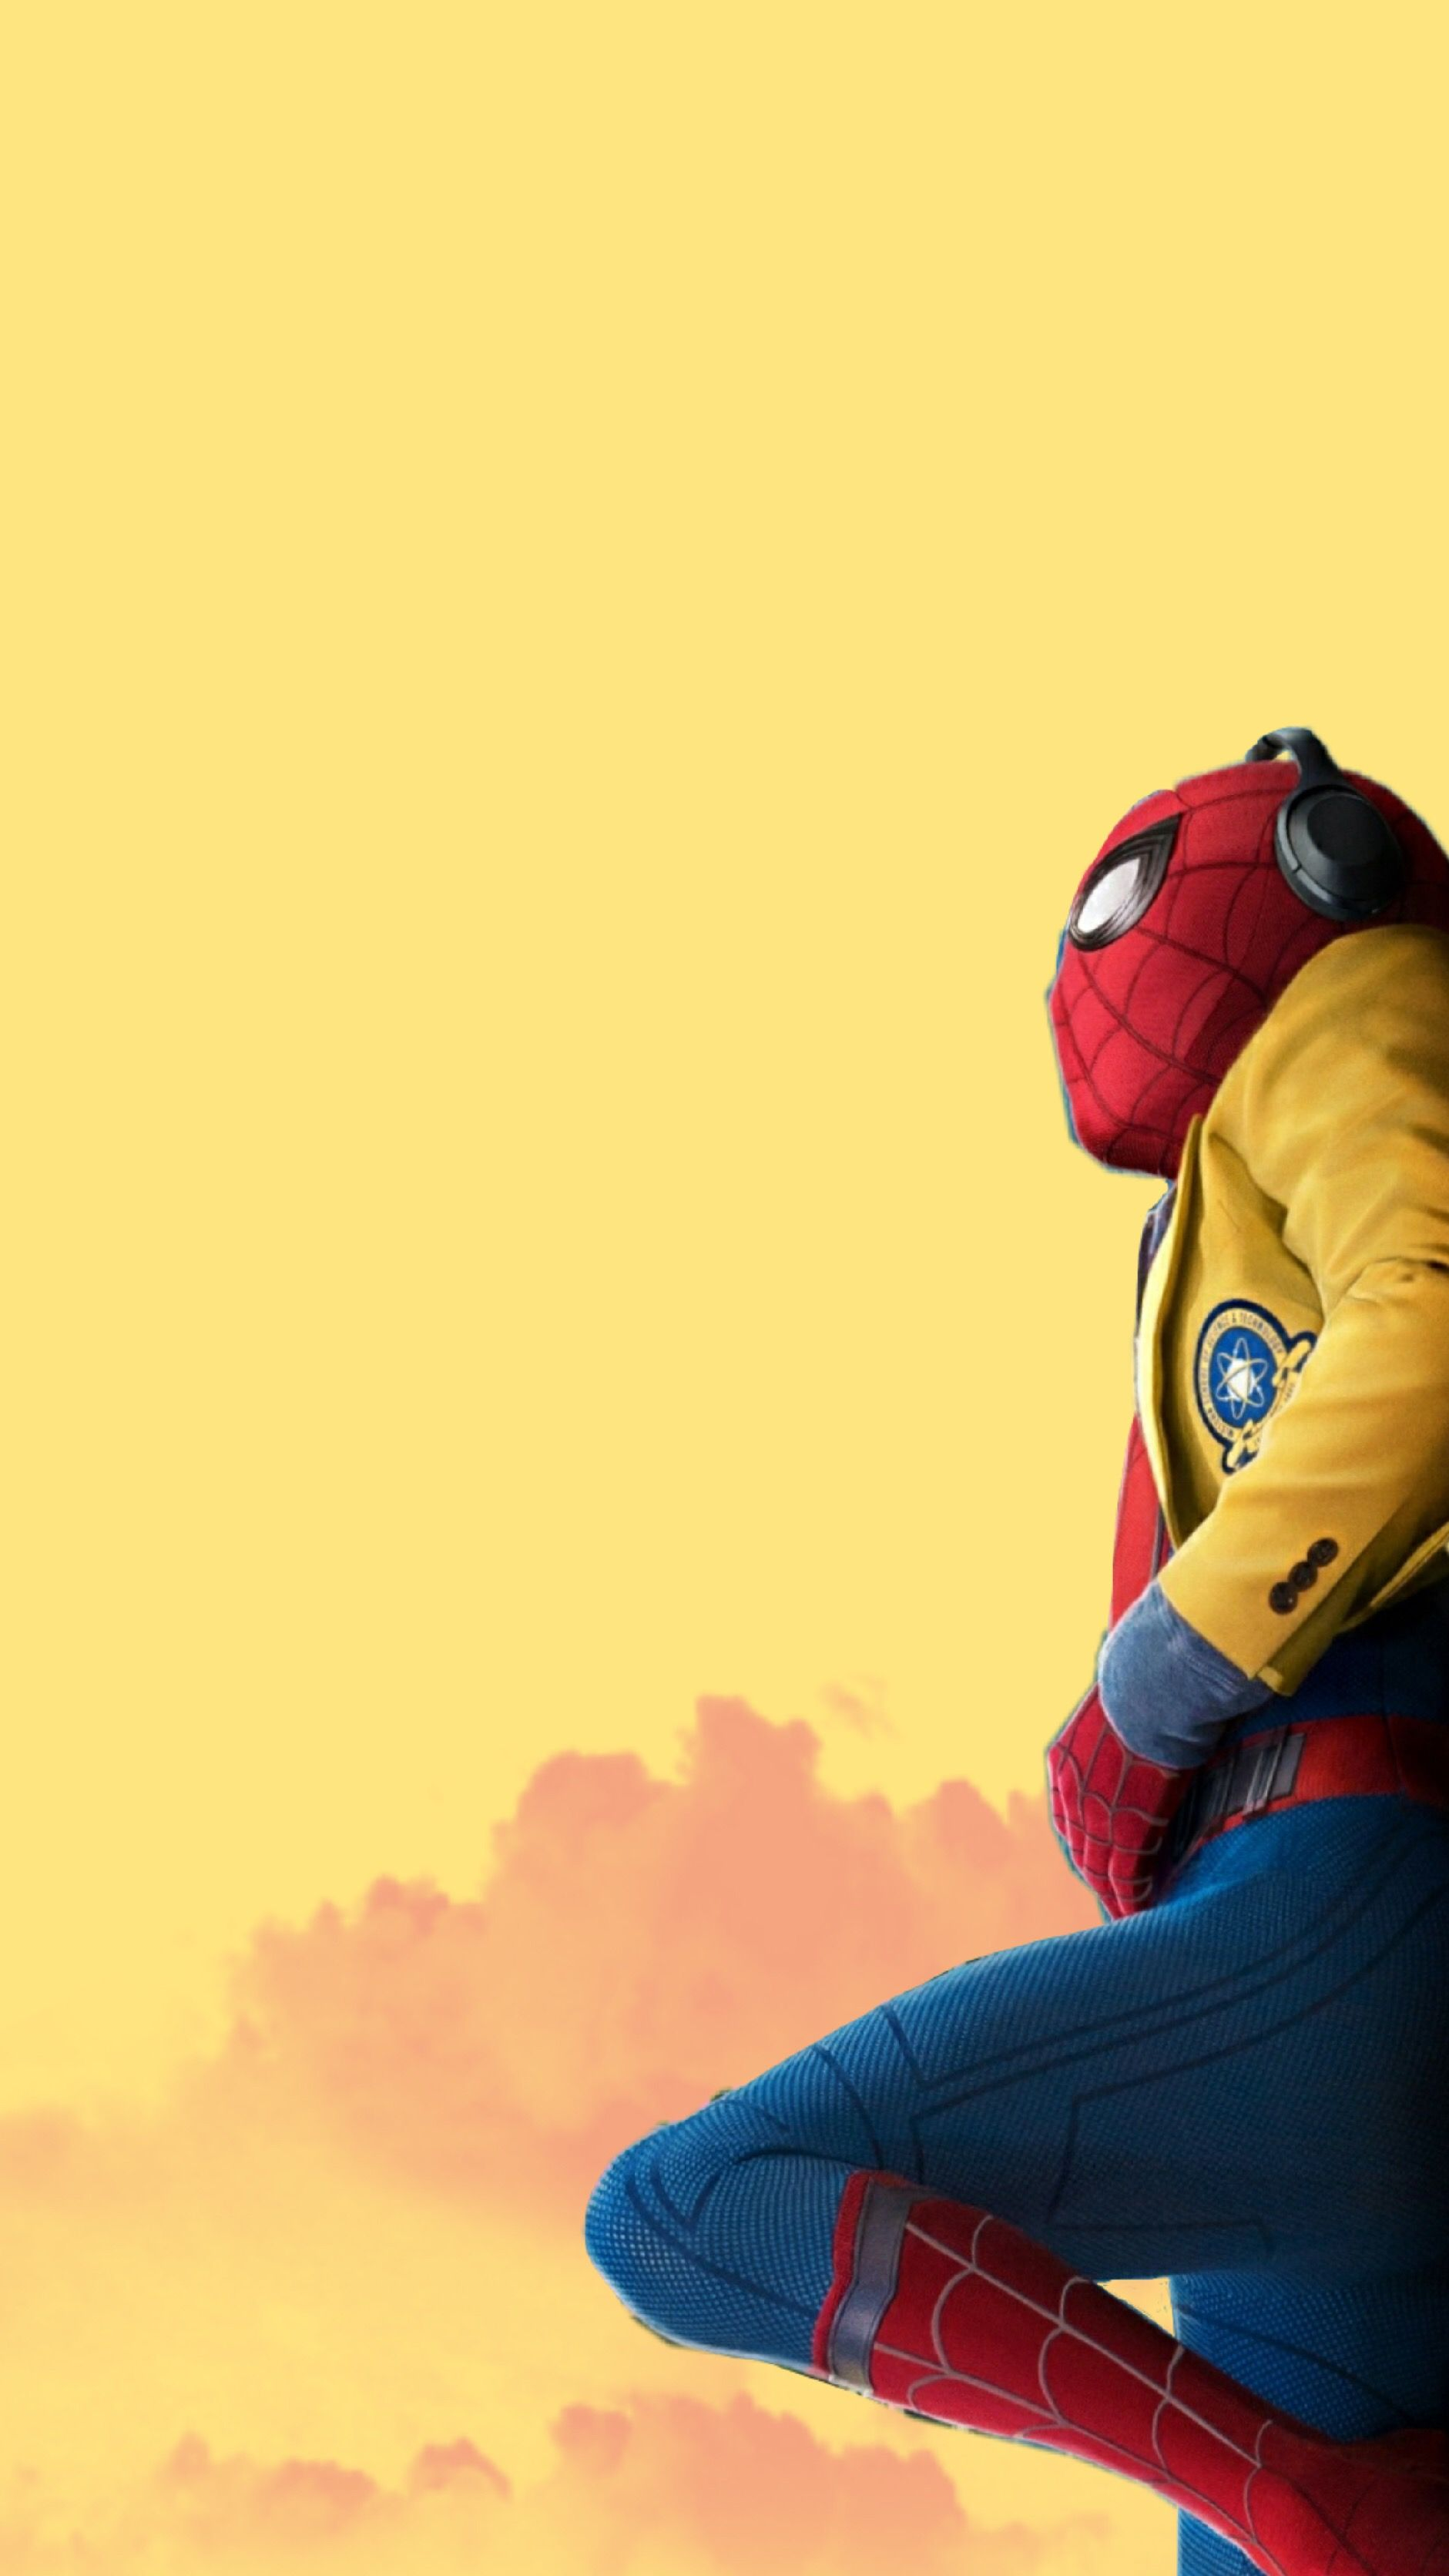 List of Cool Marvel Wallpaper Wallpaper for iPhone 11 2019